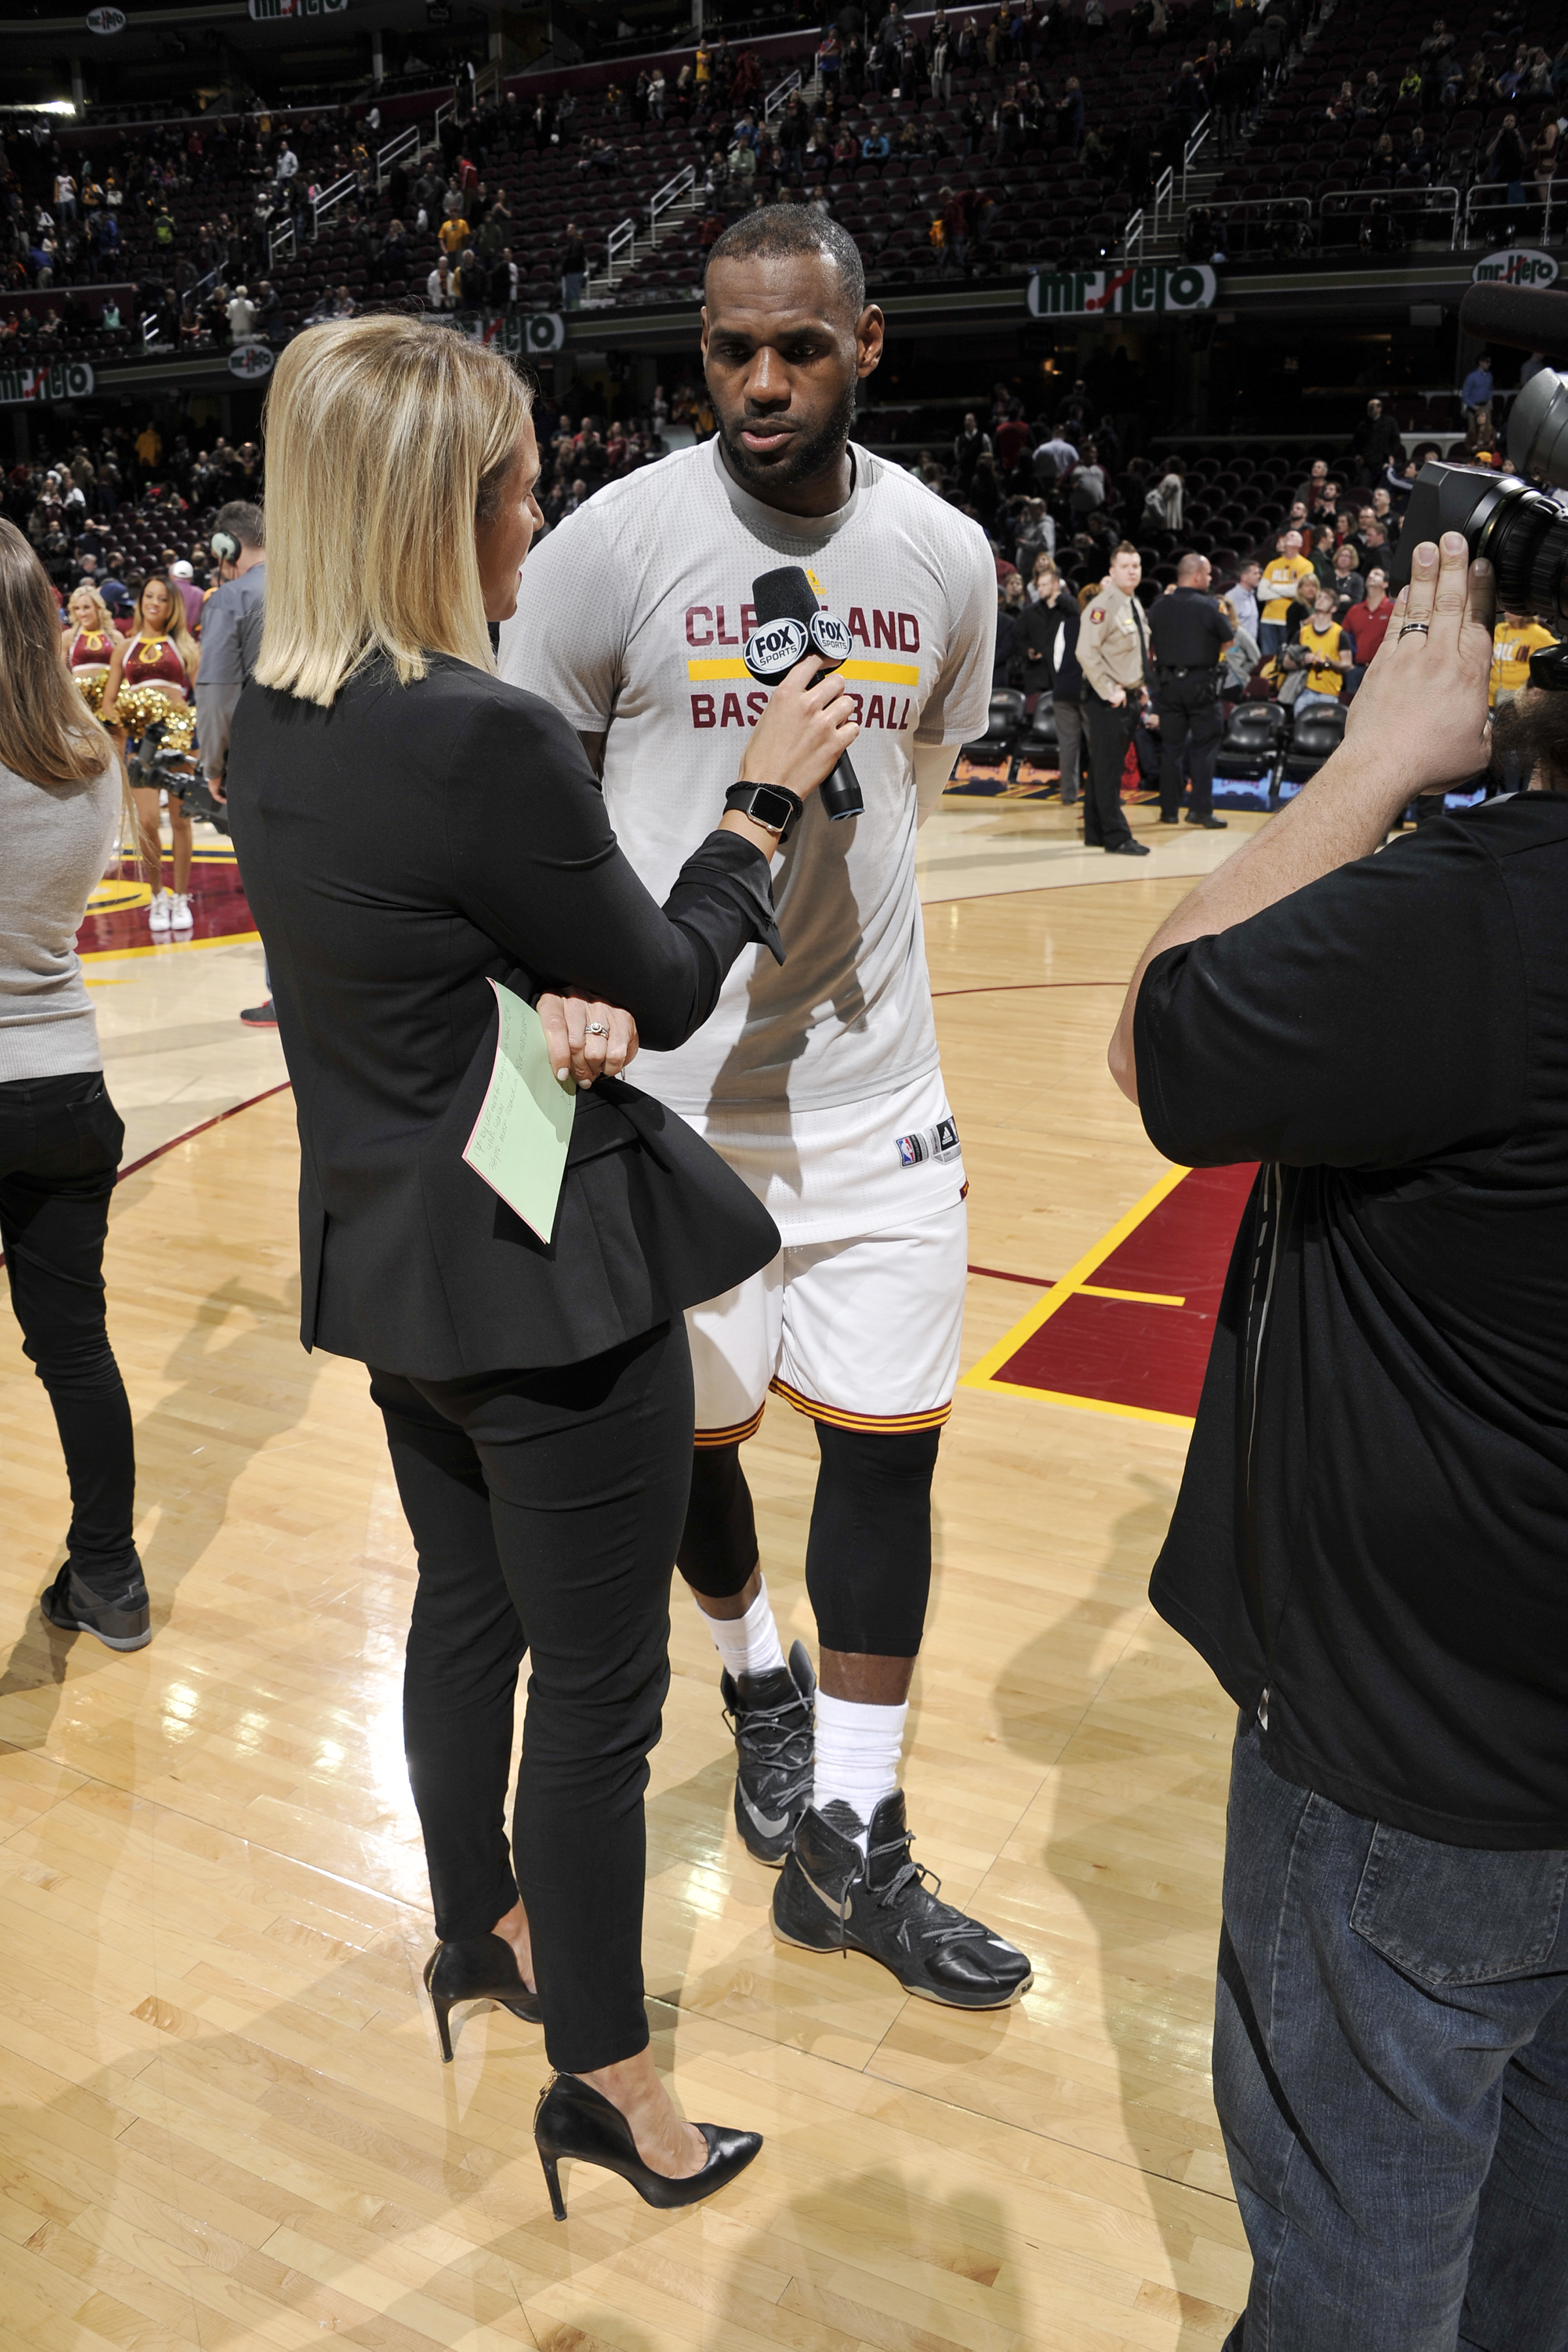 CLEVELAND, OH - MARCH 21:  LeBron James #23 of the Cleveland Cavaliers is interviewed after the game against the Denver Nuggets on March 21, 2016 at Quicken Loans Arena in Cleveland, Ohio. (Photo by David Liam Kyle/NBAE via Getty Images)